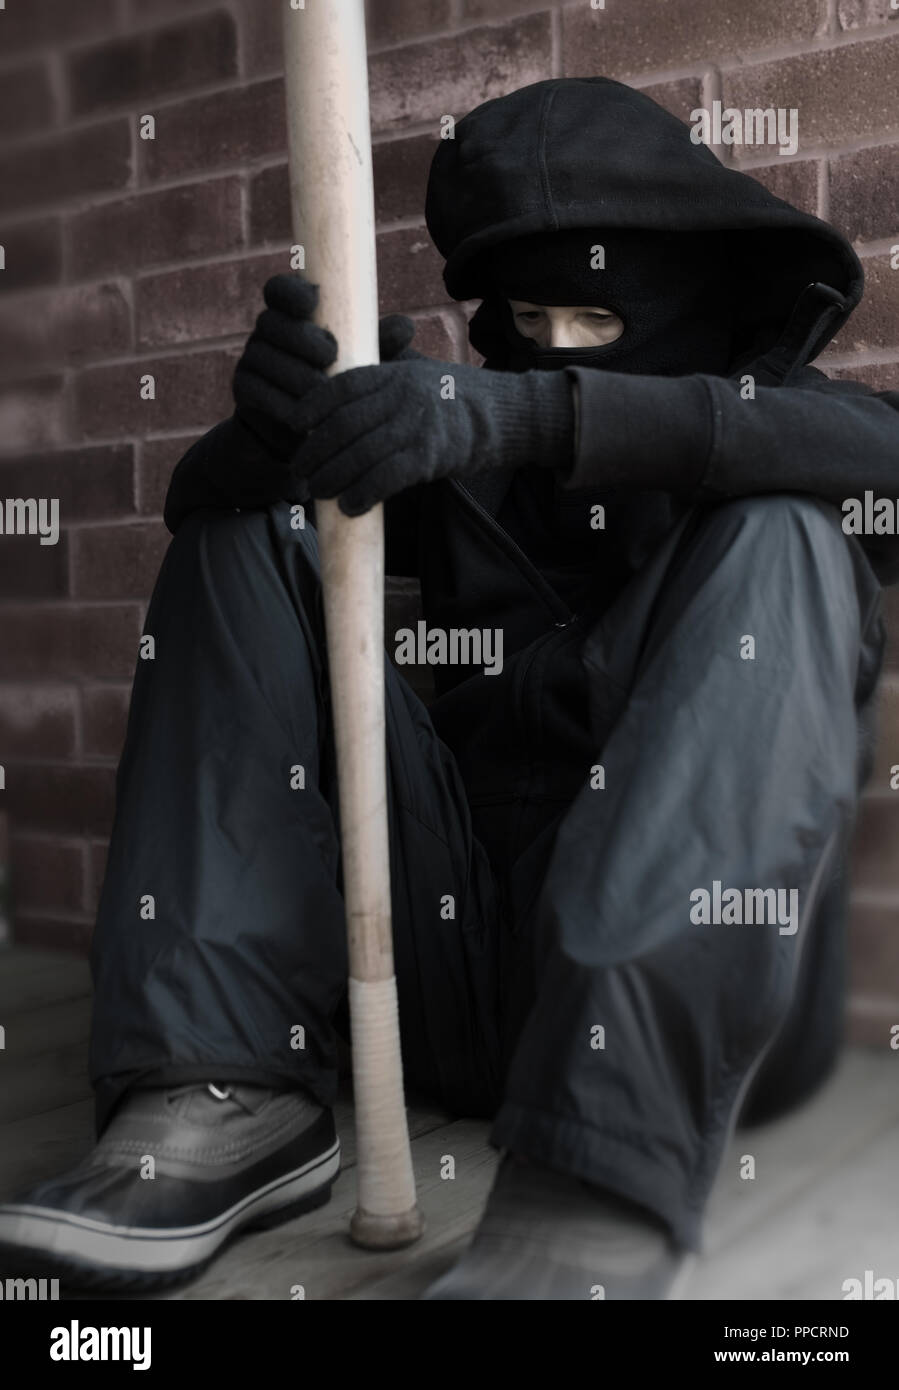 A rioter ready for troubles, is waiting with a baseball bat in his hands, ready for attack. Stock Photo